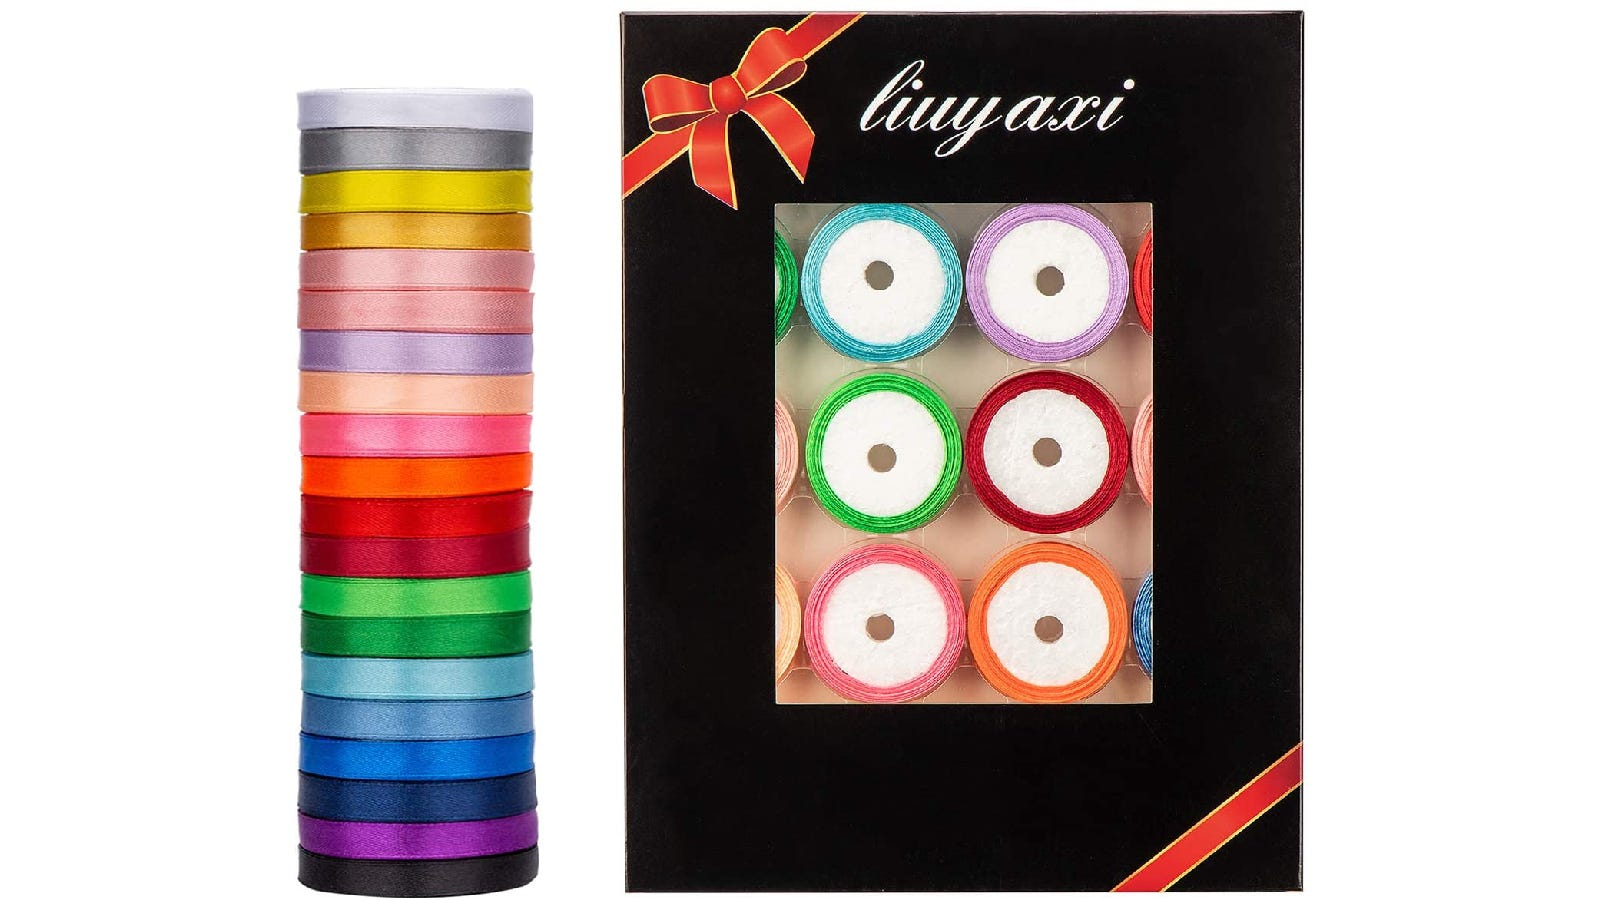 20 brightly colored ribbons stacked vertically next to black rectangular packaging